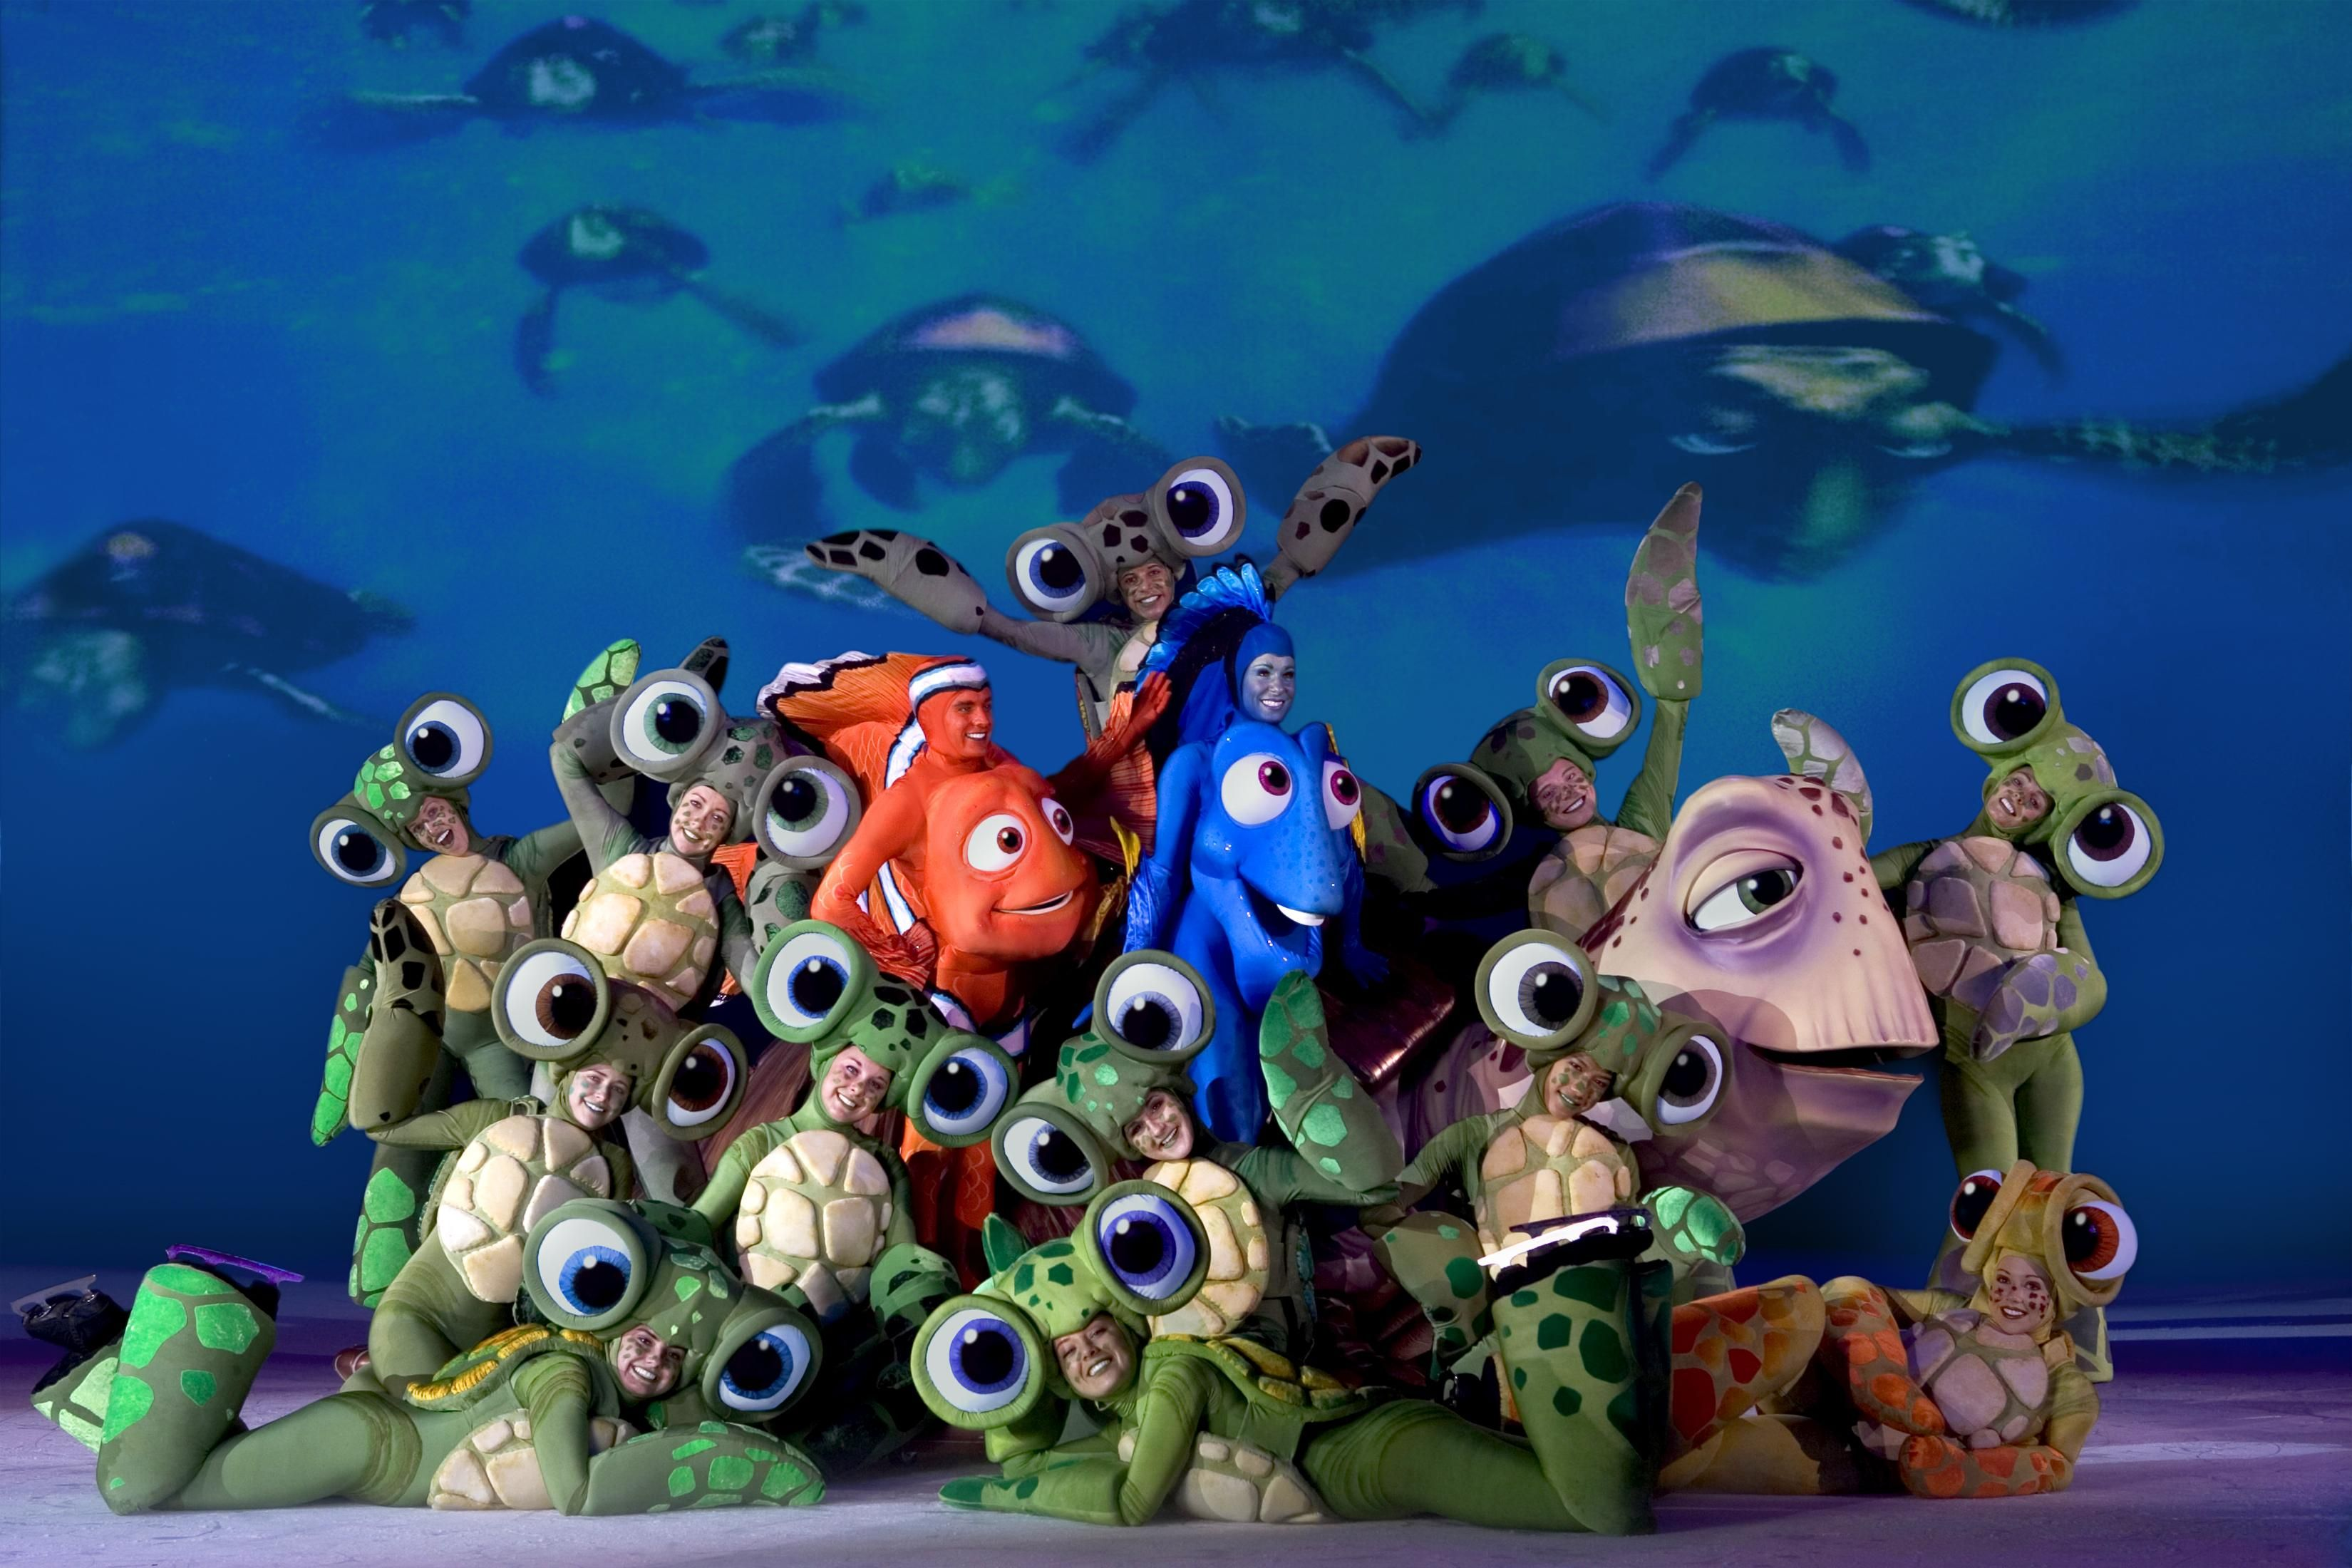 Finding Nemo Hd Wallpapers Finding Nemo On Ice 1071185 Hd Wallpaper Backgrounds Download